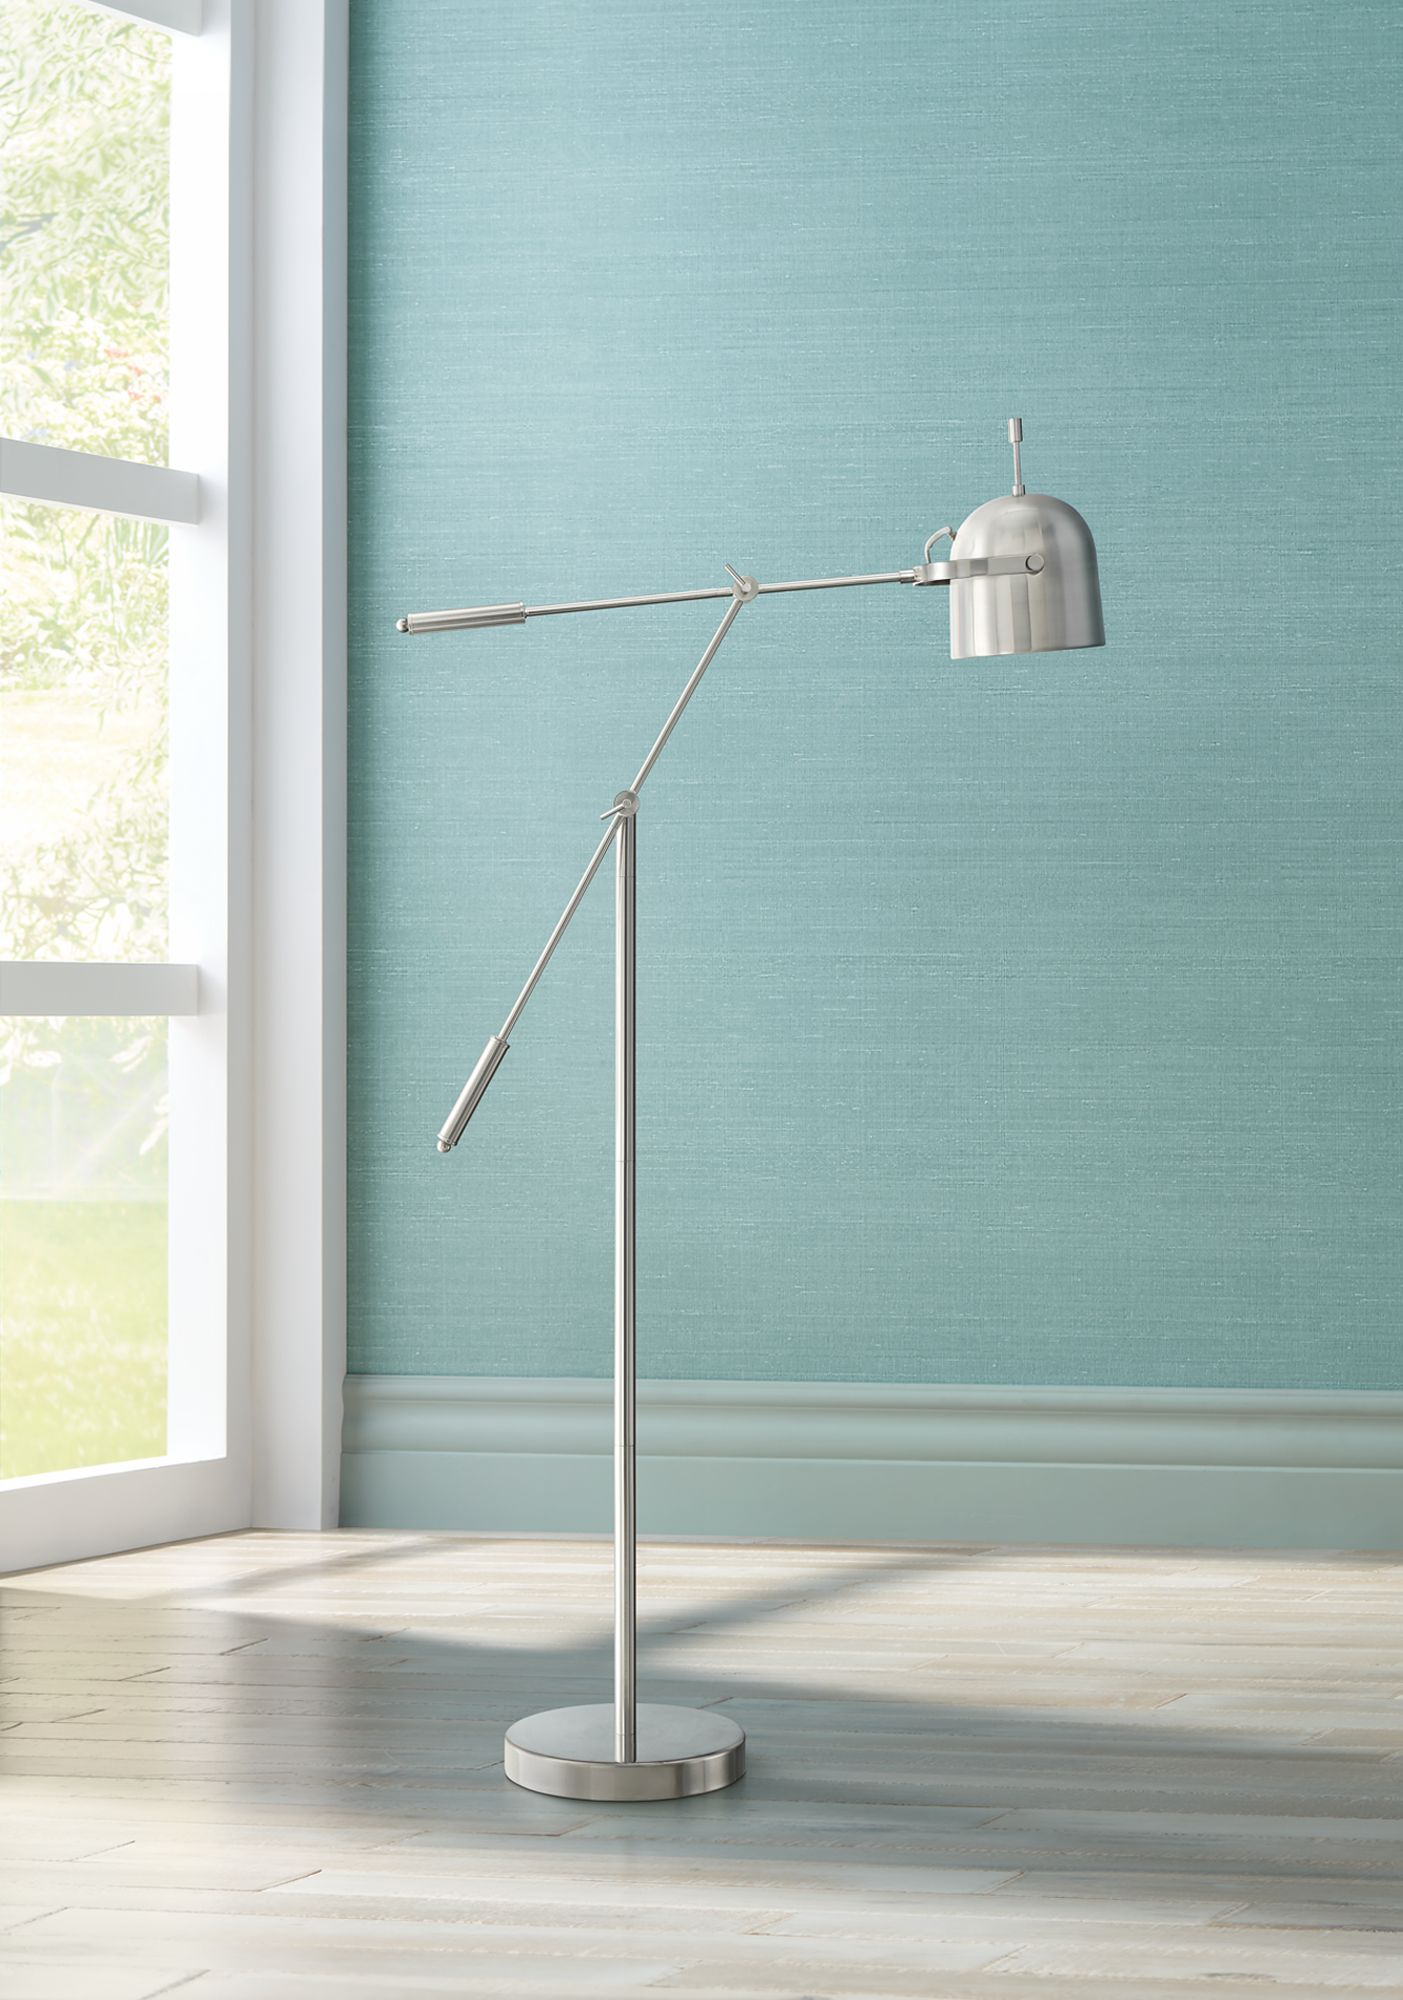 Lonnie Satin Nickel Boom Pharmacy Floor Lamp - #1K786 | Lamps Plus